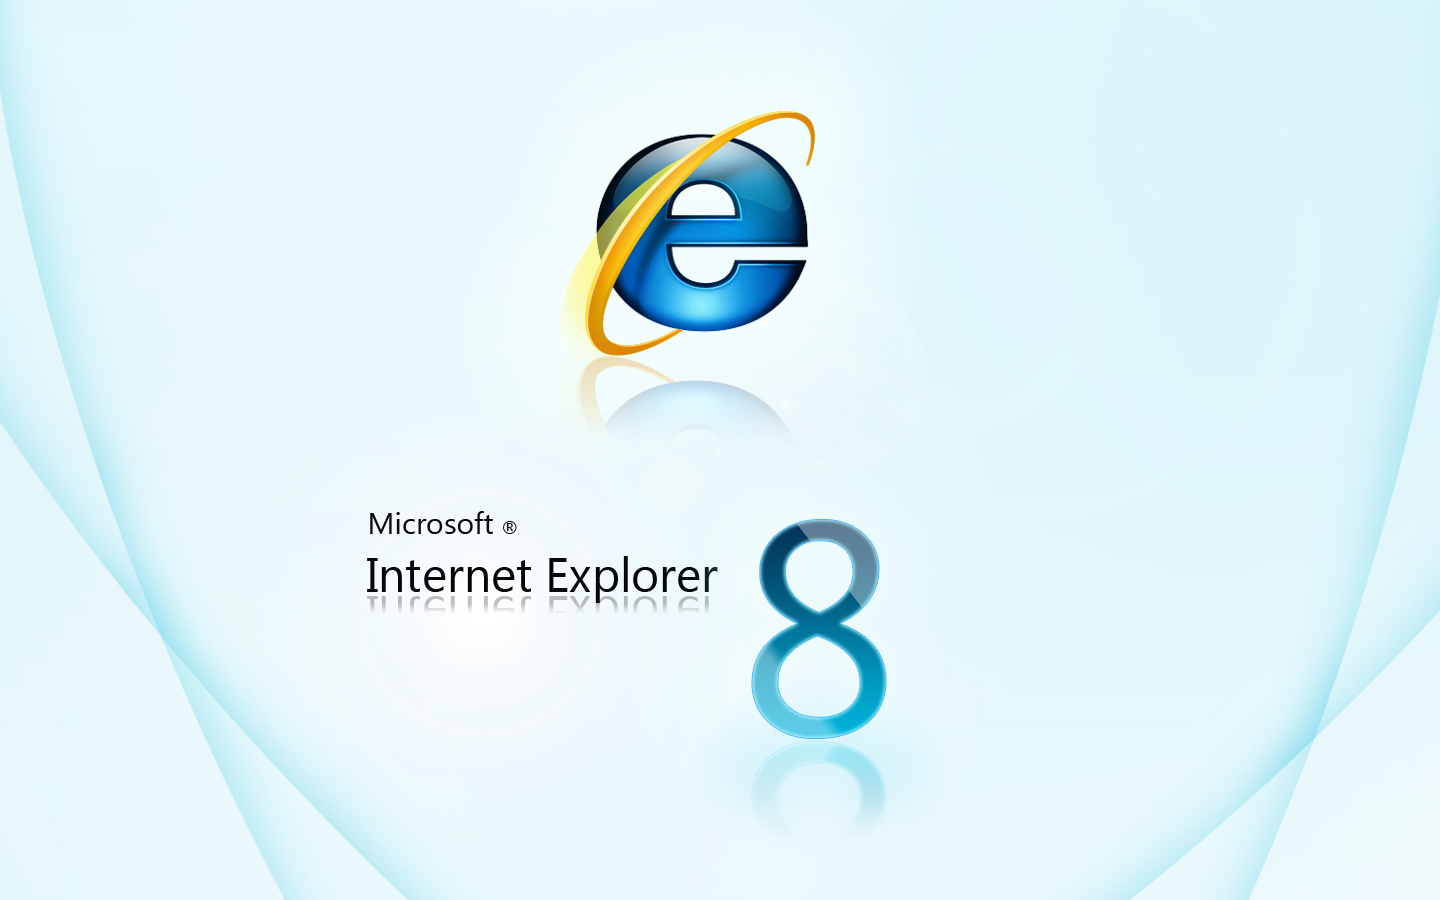 internet explorer free wallpaper - wallpapersafari